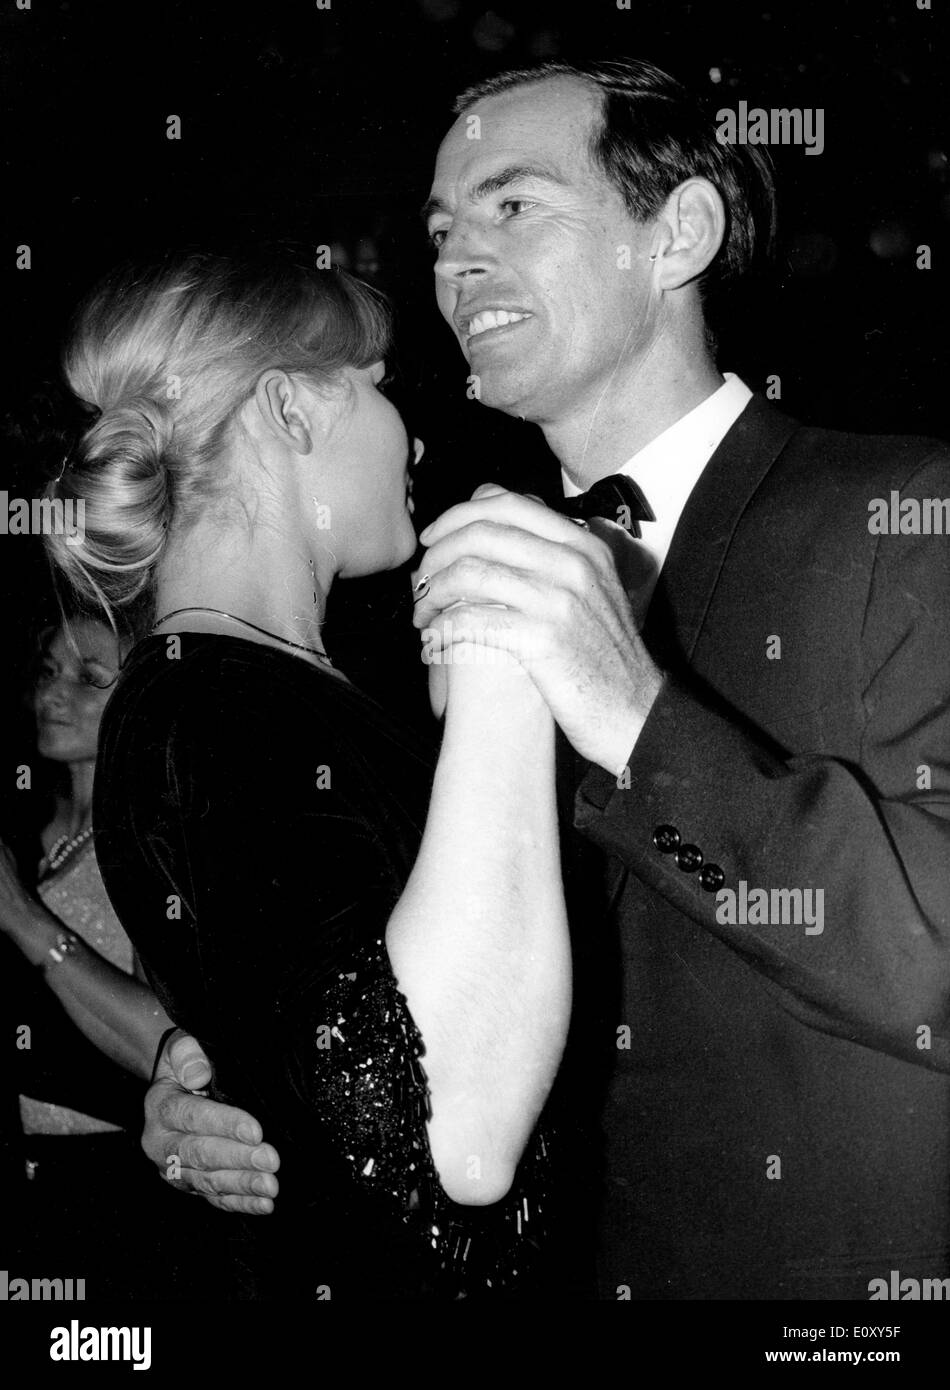 Jan 29, 1968; Munich, Germany; The surgeon CHRISTIAN BARNARD was invited to a ball in Munich Germany where he was dancing with CATHY BILTON. - Stock Image